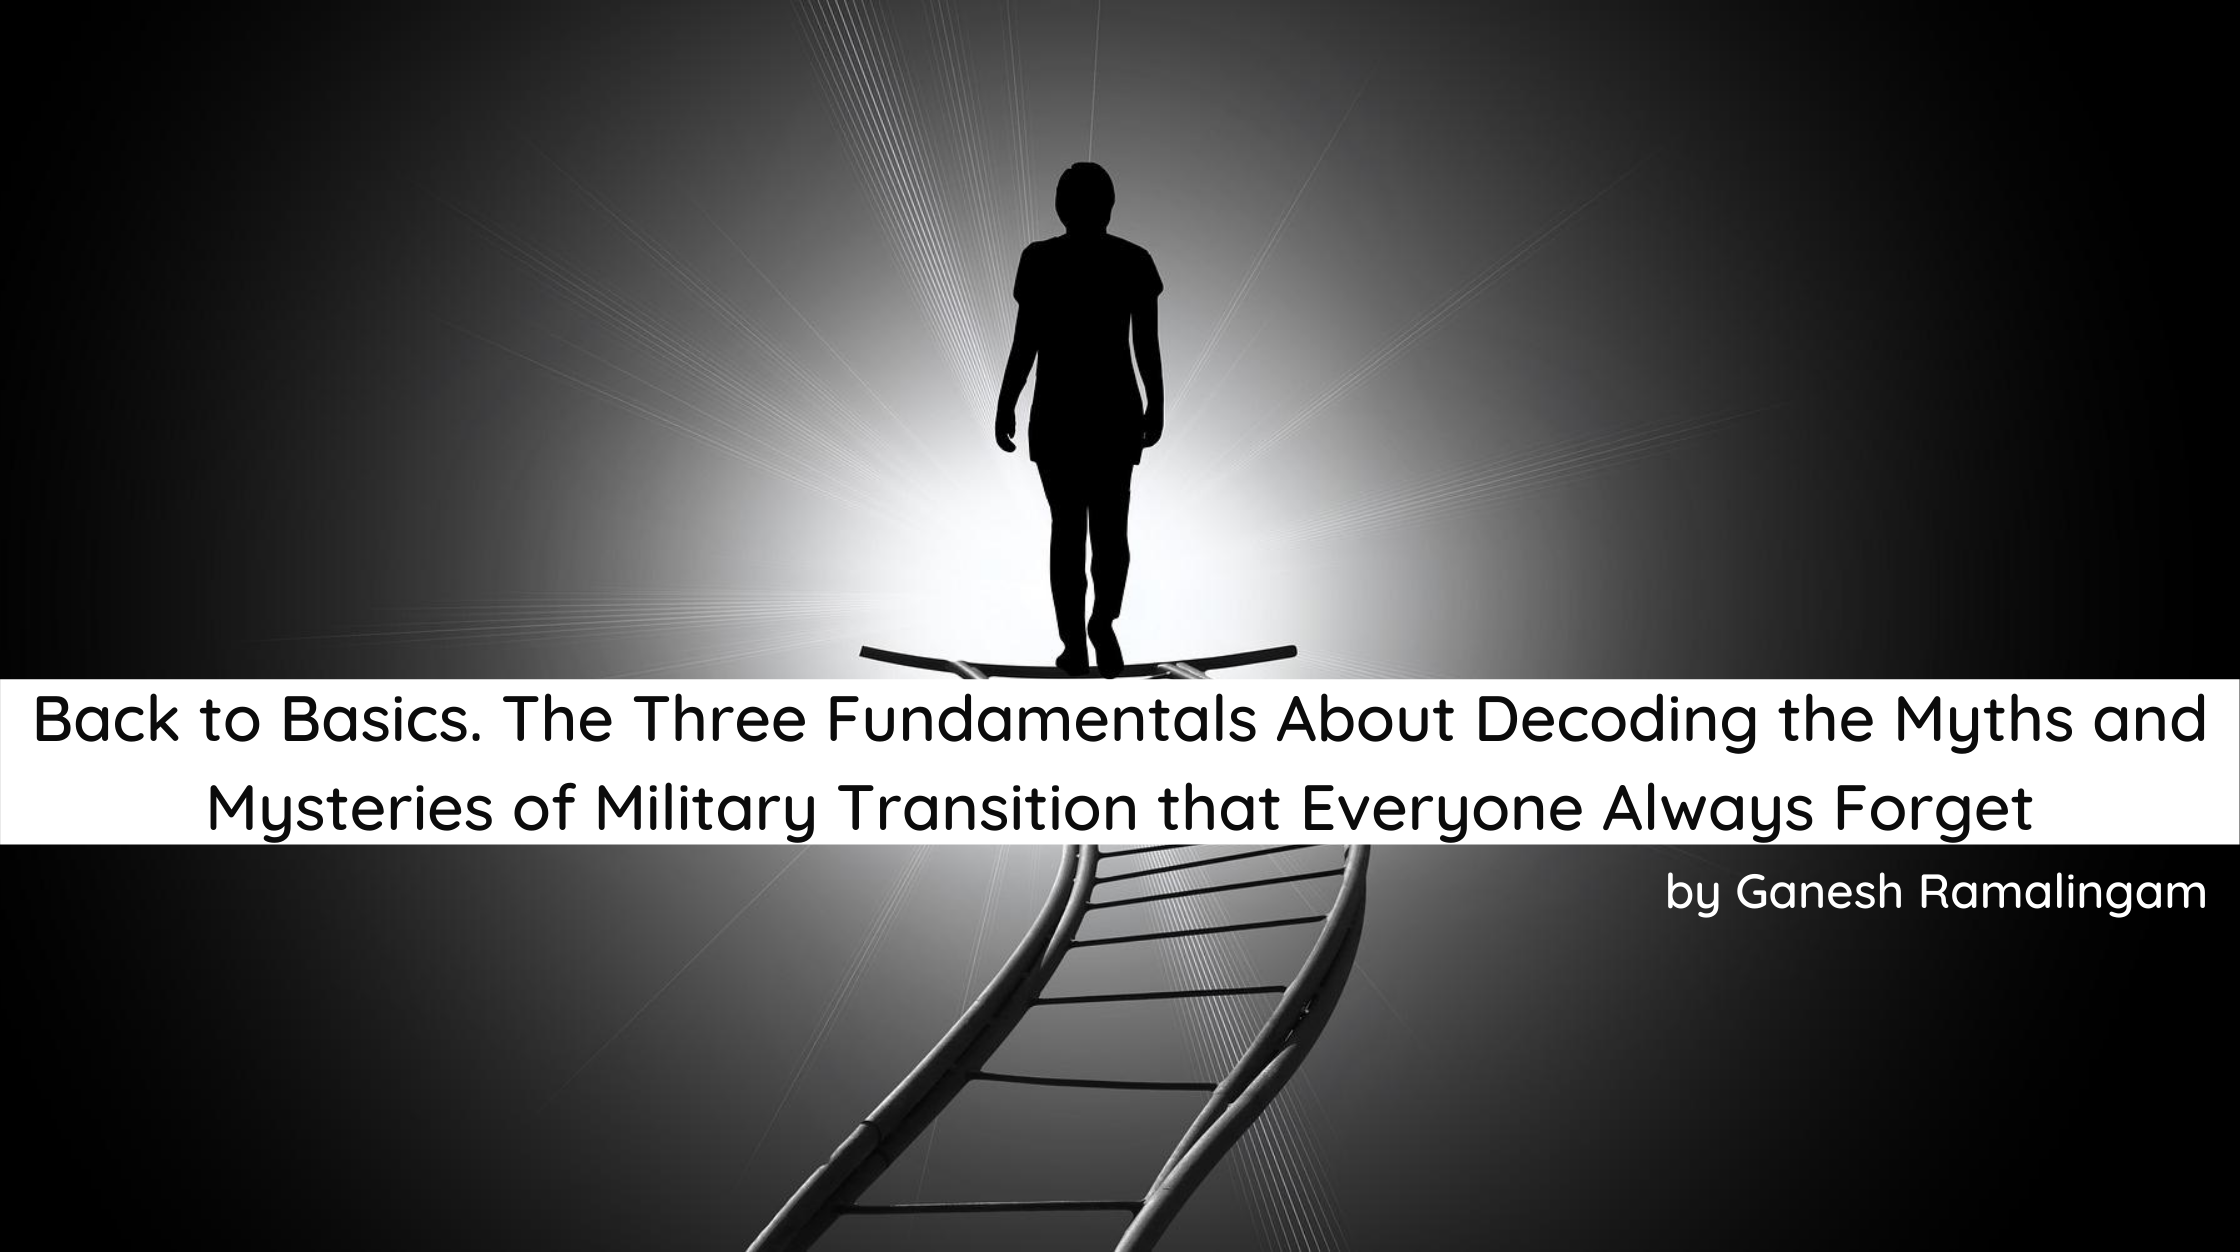 Back to Basics. The Three Fundamentals About Decoding the Myths and Mysteries of Military Transition that Everyone Always Forget